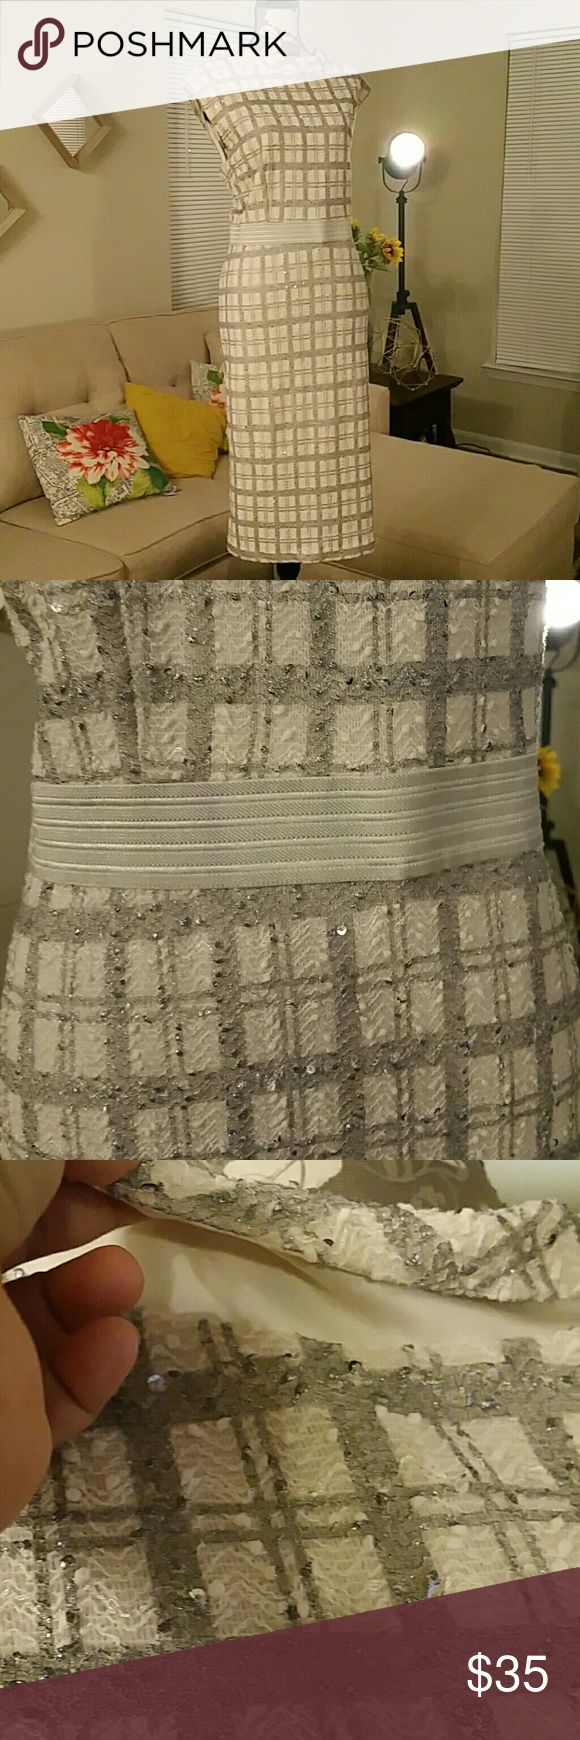 """NY&Co Eva Mendes """"Jackie O"""" inspired dress Size 20 97%polyester, 3%spandex, 100%polyester lining.Elastic detail waist line ,beautiful neckline with more open back creating a v.Ivory,silver plaid with silver and clear sequins/flecks.Very unique. FITS great.Like new,wore for new years only.I consider this a prom,party,or special event dress but it could also be church or a night out dress.Eva M for NY&CO.This dress is a treat! Eva Mendes Dresses Prom"""